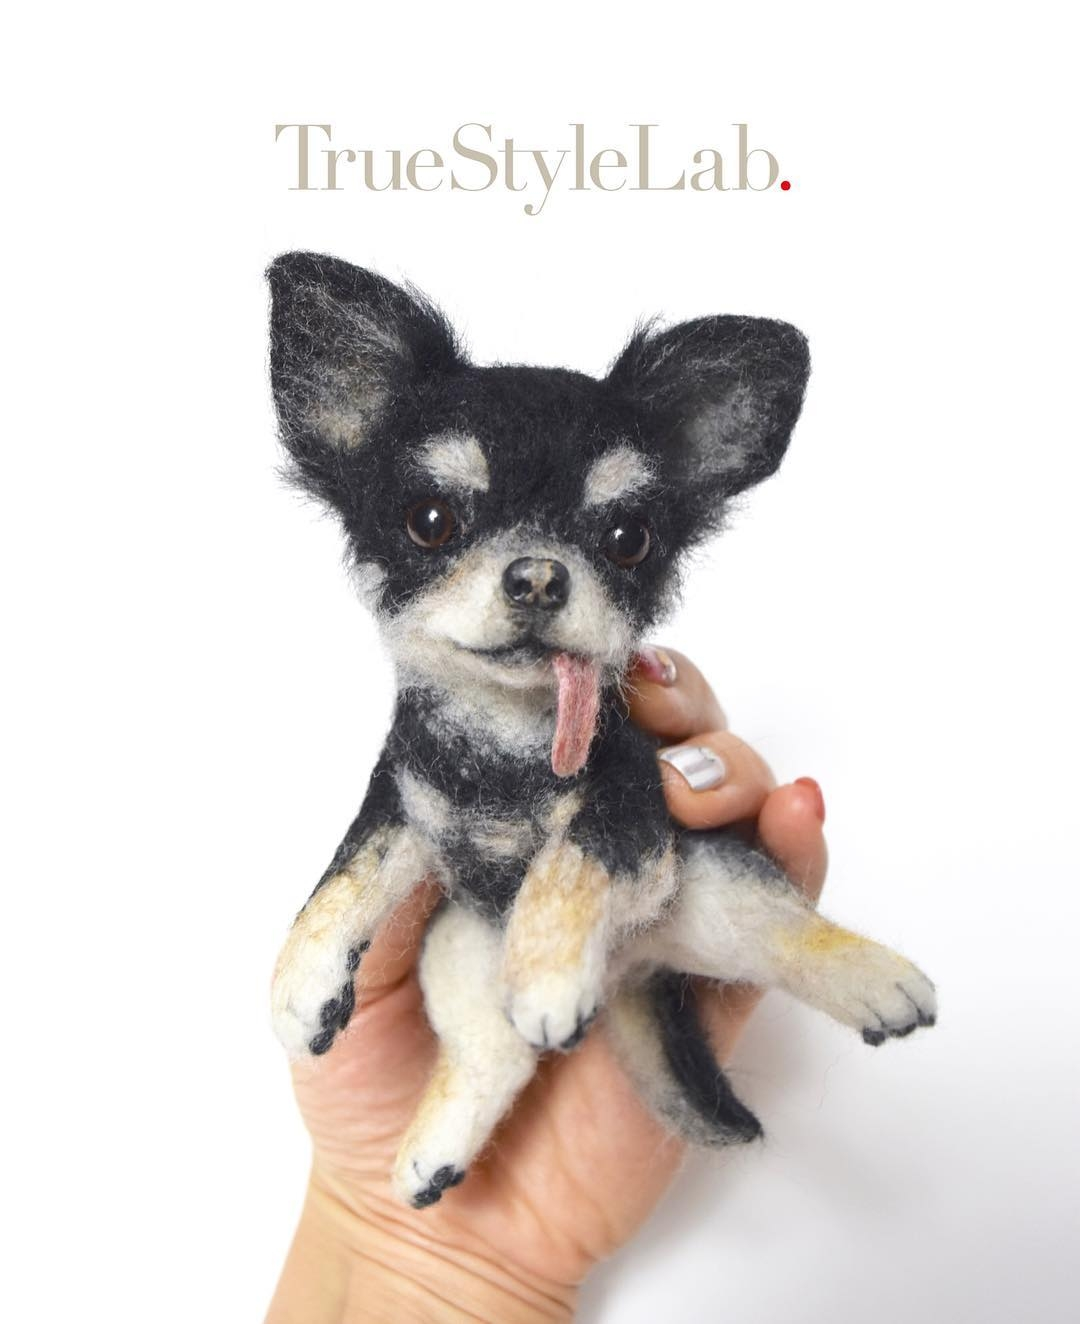 07-Chihuahua-Terumi-Ohta-Giving-Life-to-Woollen-Animal-Sculptures-www-designstack-co